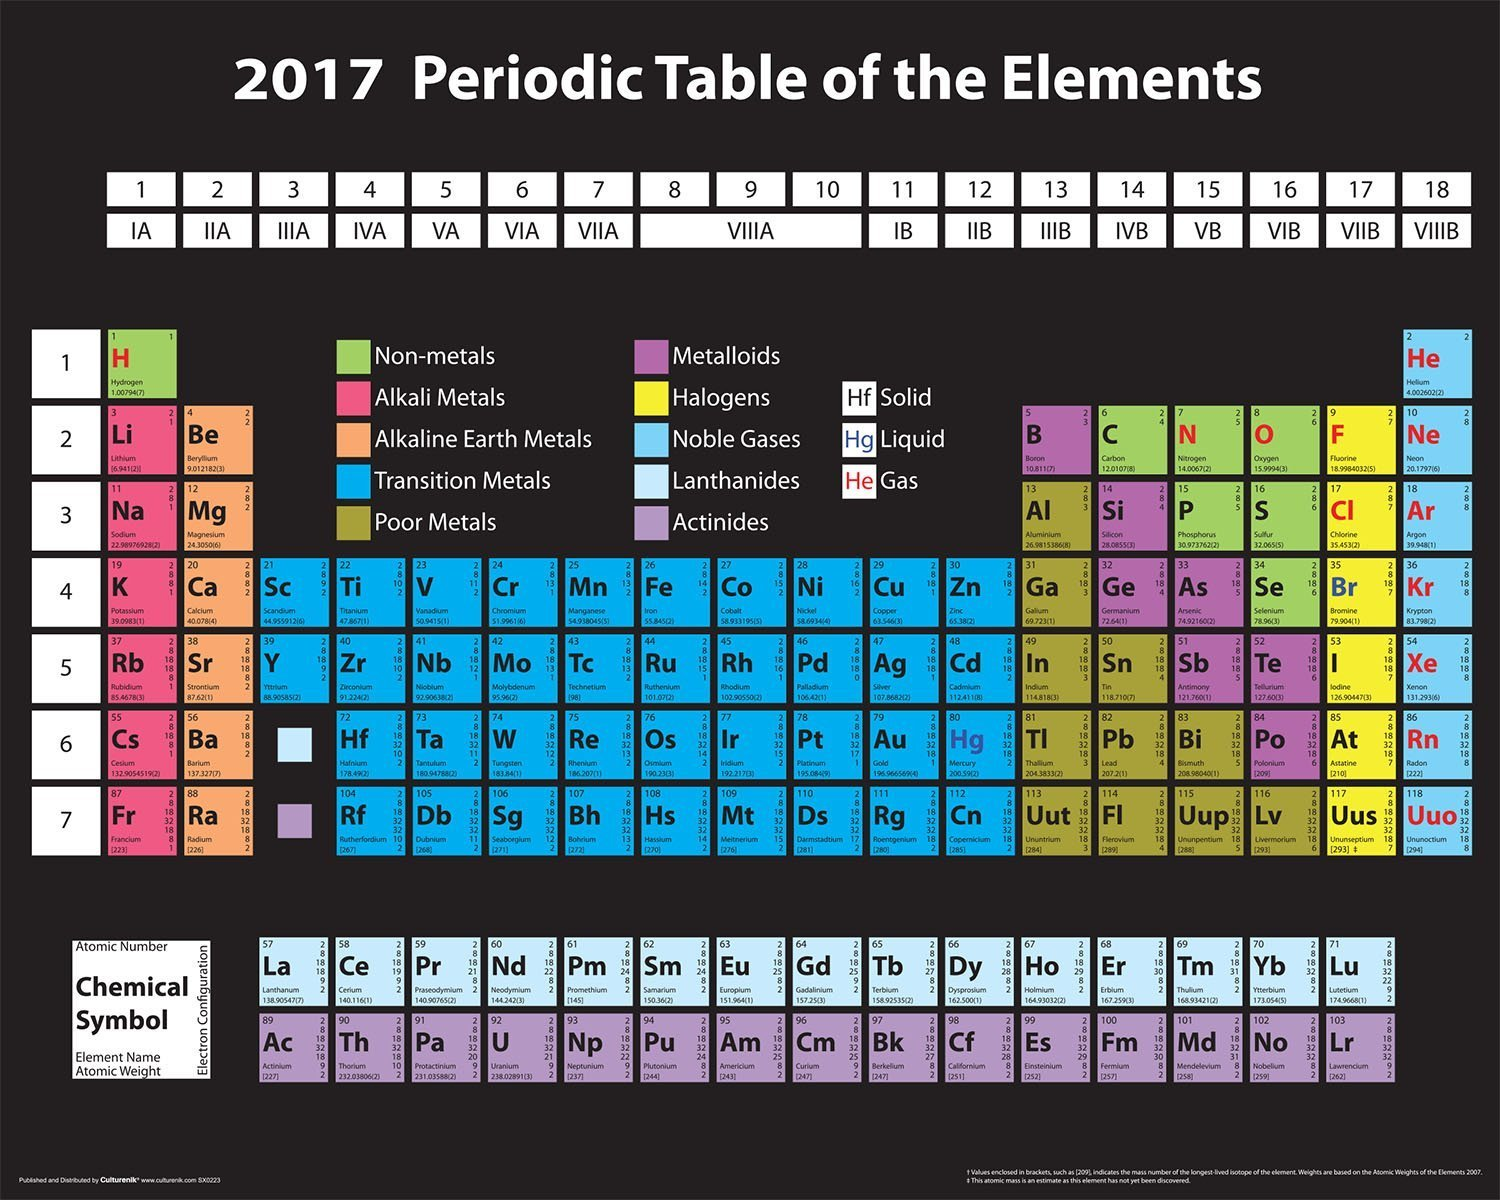 Amazon periodic table of elements 2017 decorative educational amazon periodic table of elements 2017 decorative educational science classroom print unframed 16x20 poster posters prints urtaz Images